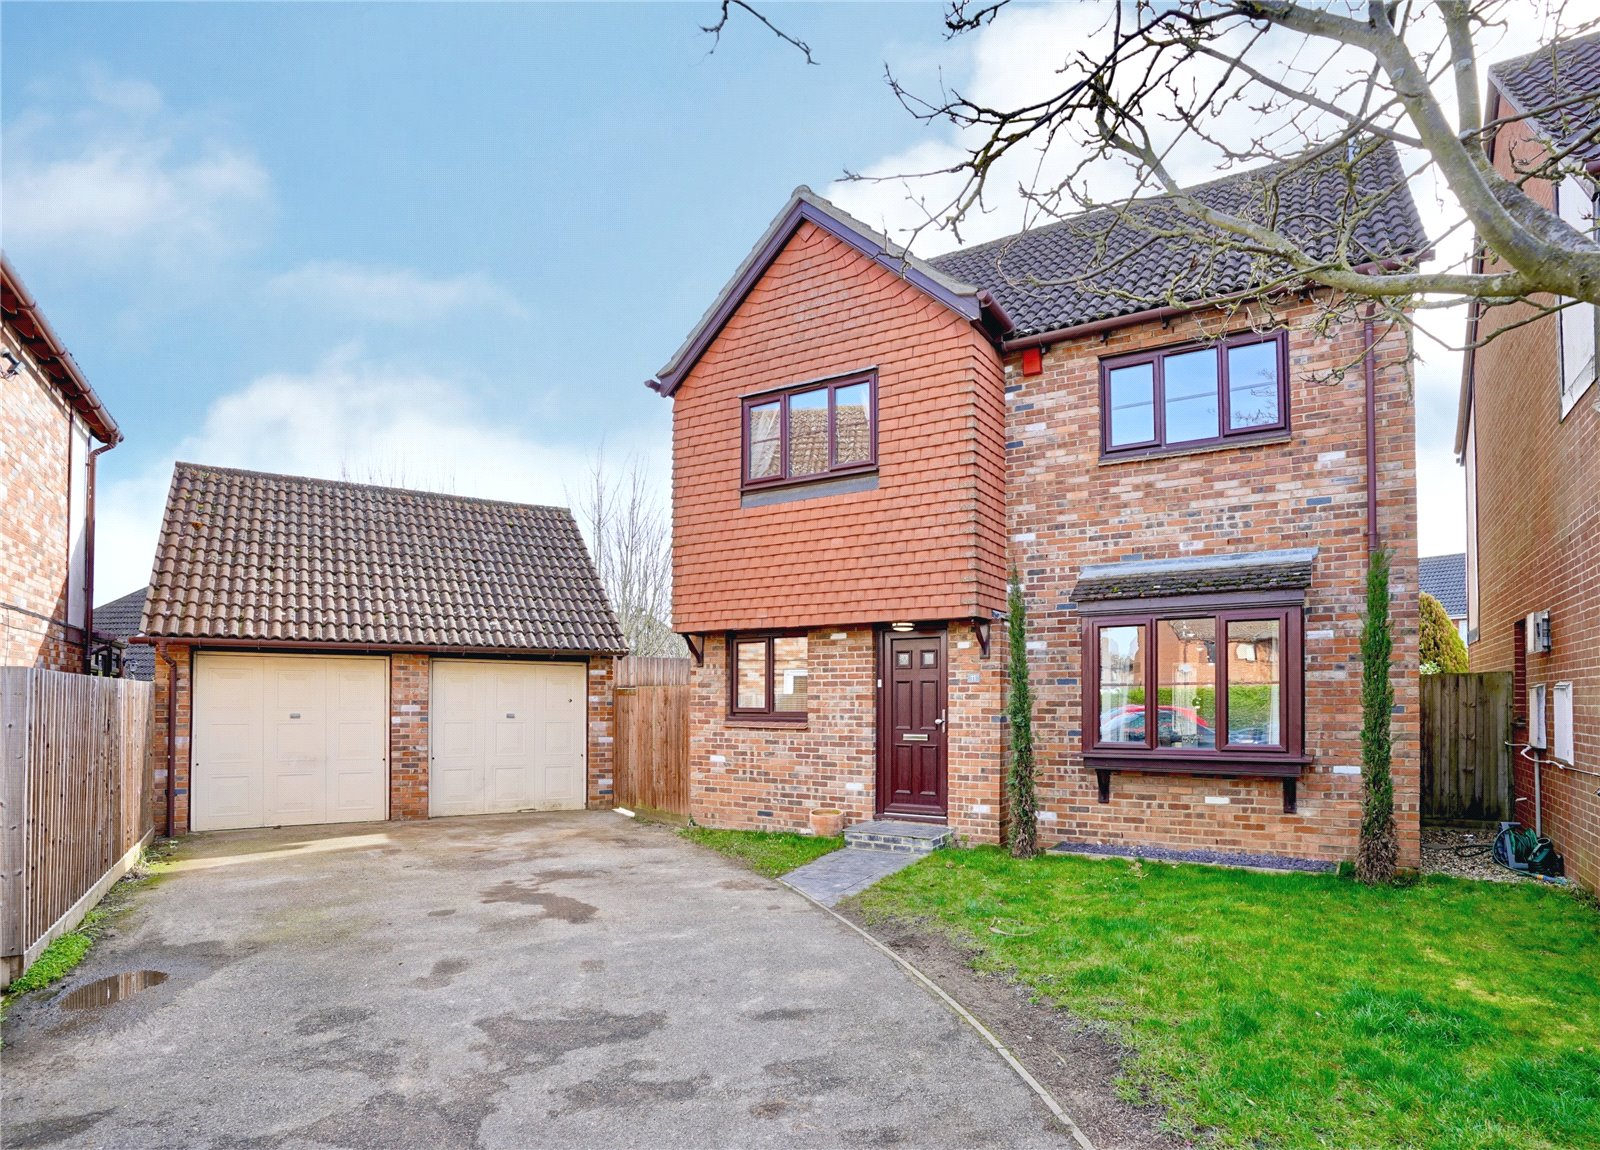 4 bed house for sale in Potton, Jennings Close, SG19 2SE - Property Image 1